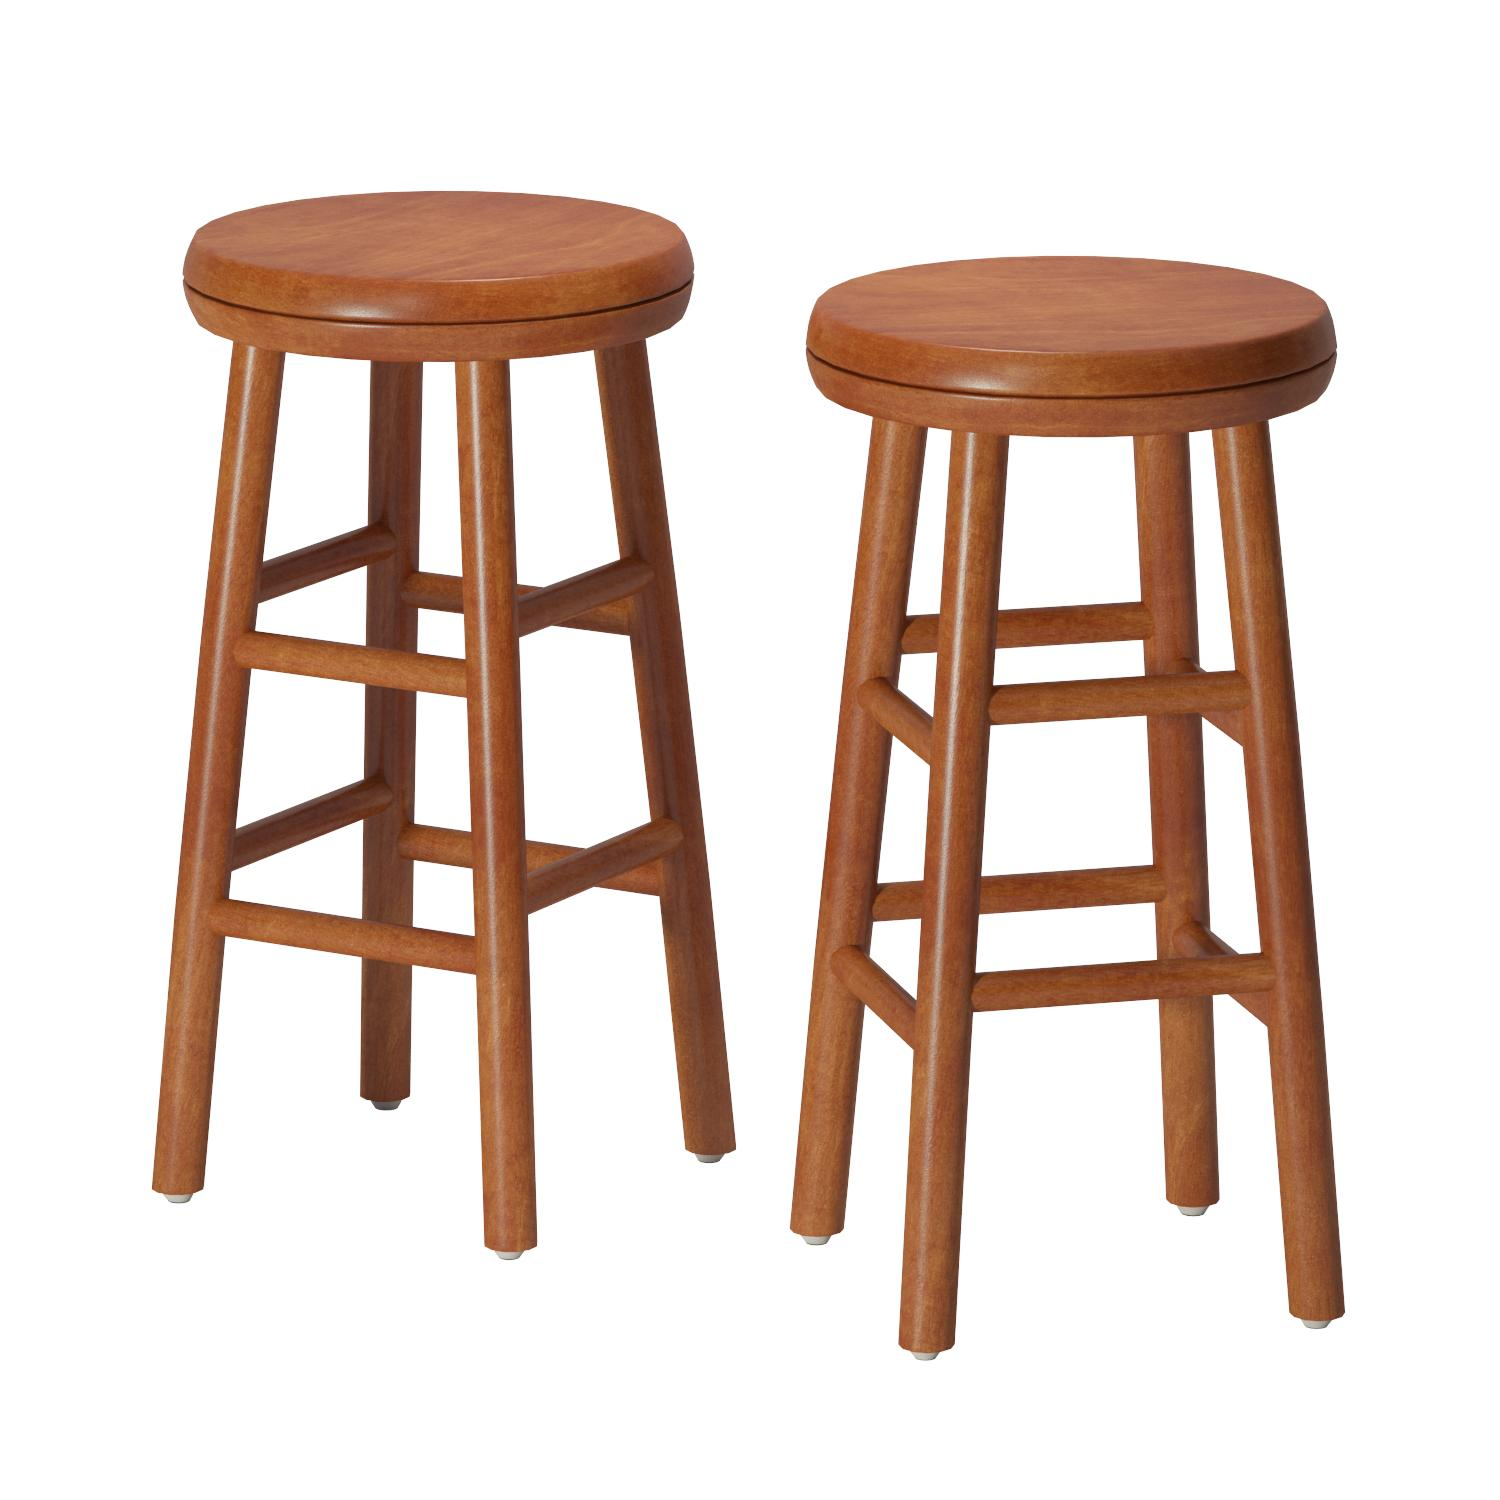 Best Of Stool 18 Inches High